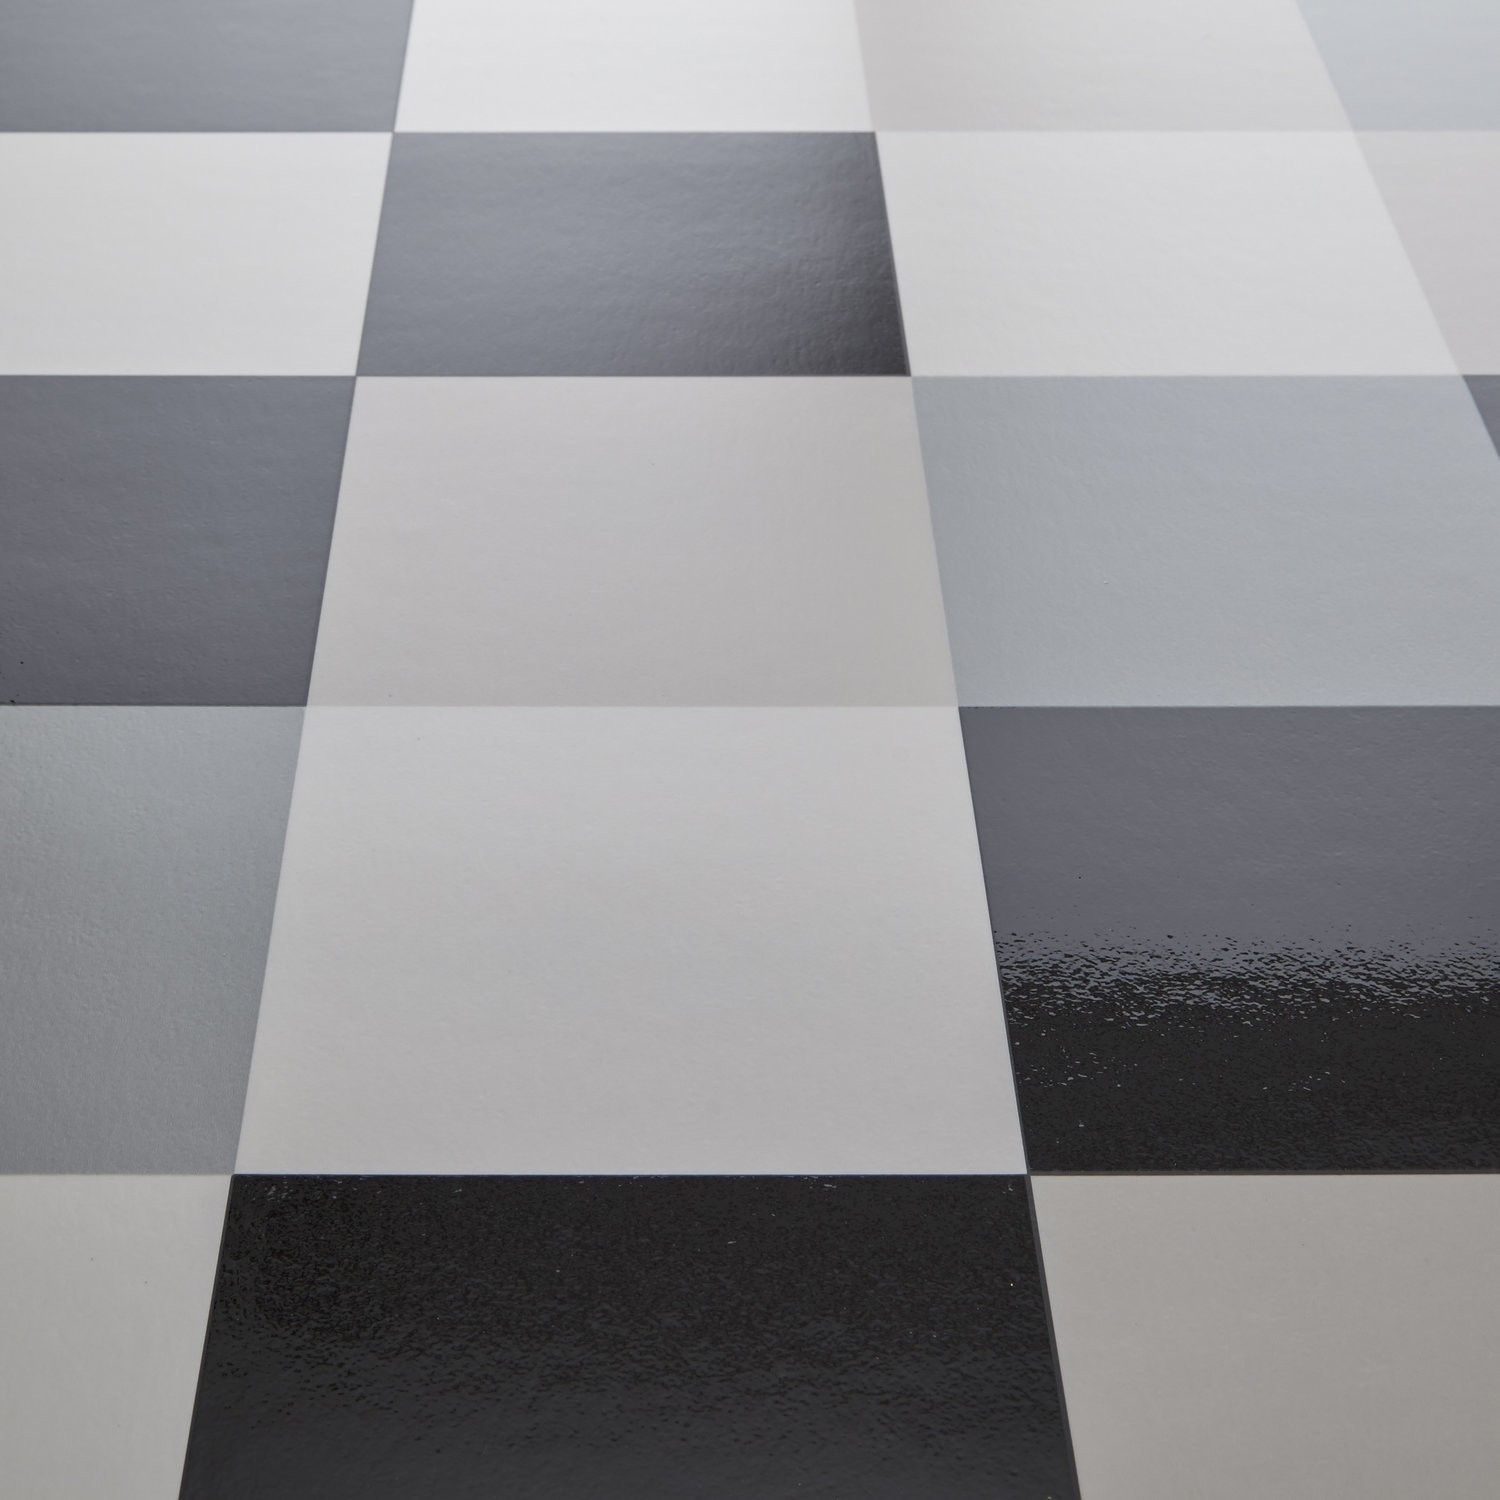 Hekto grey black chequered tile vinyl flooring for Black vinyl floor tiles